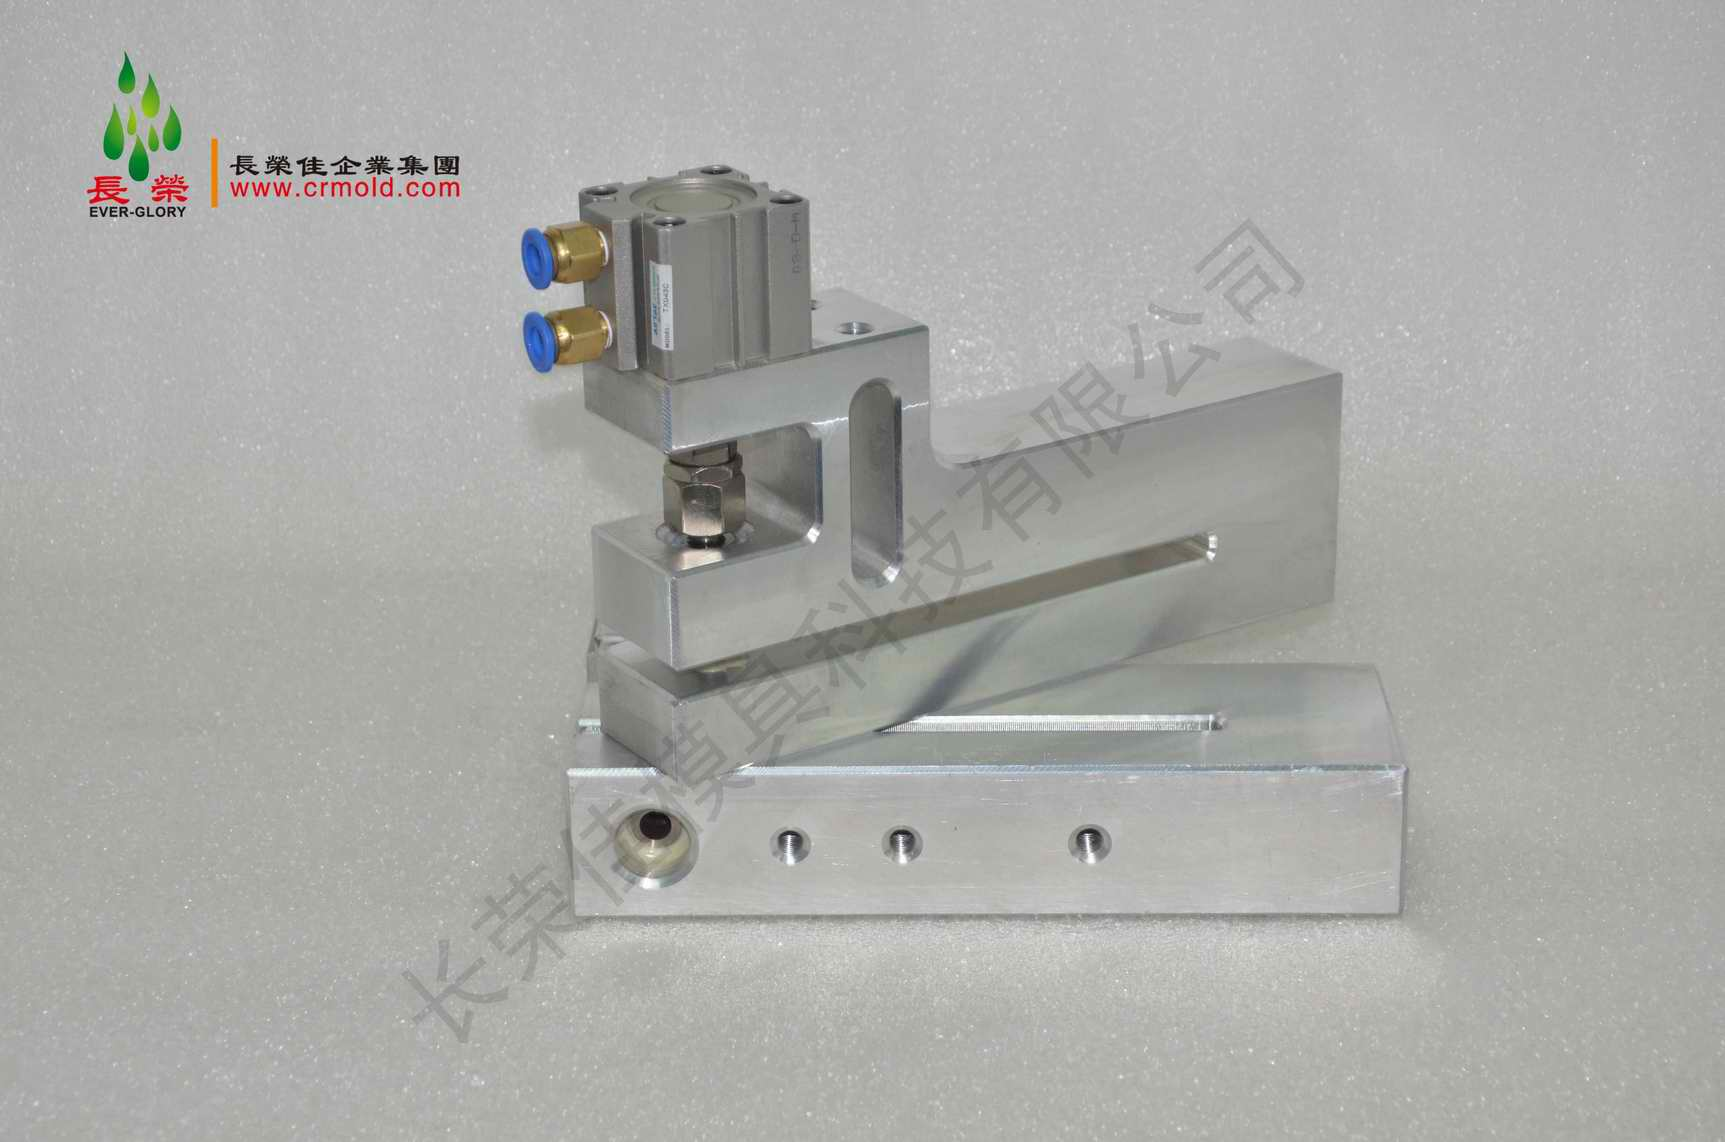 150mm extended throat depth round hole